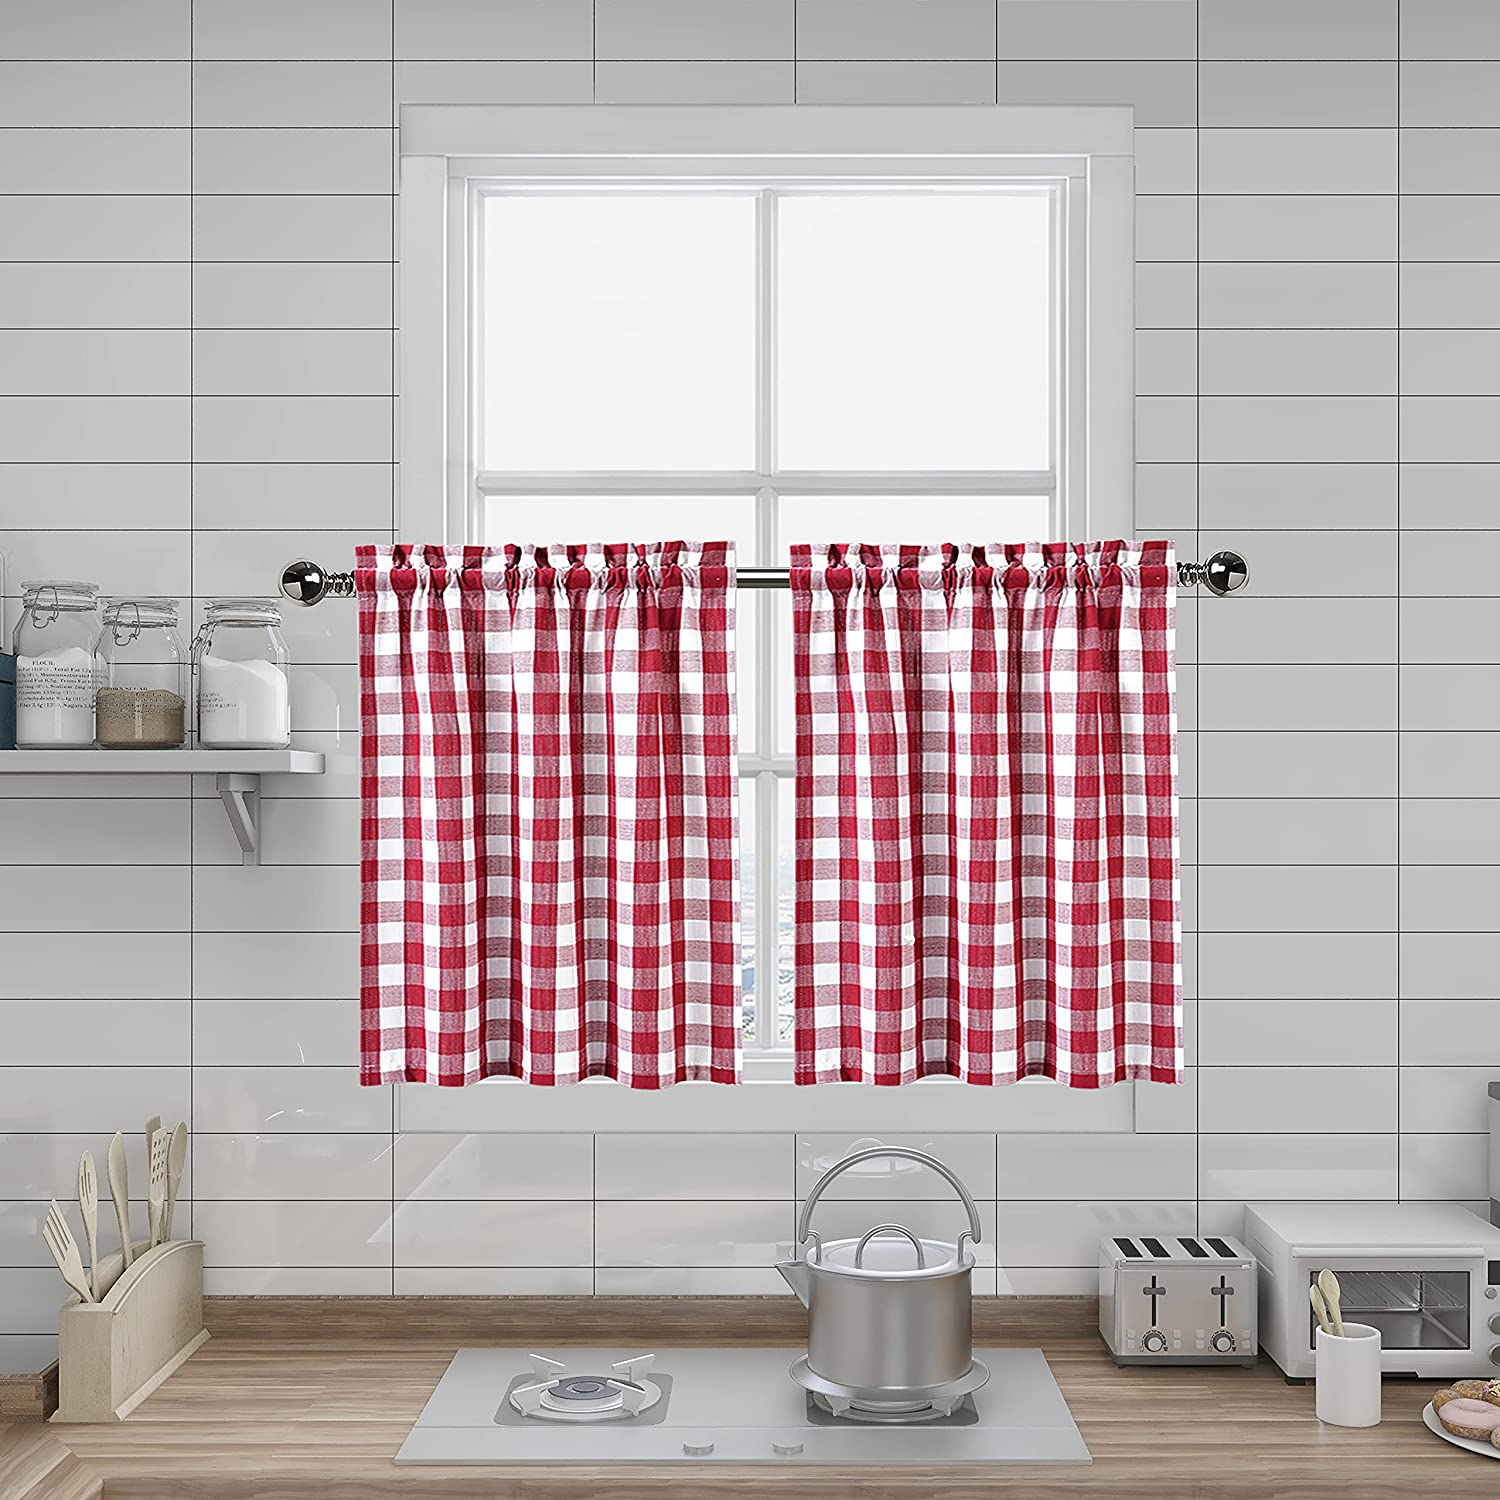 Red and White Tier Kitchen Dedication OFFicial Curtains Buffalo Inches Long 36 Plai